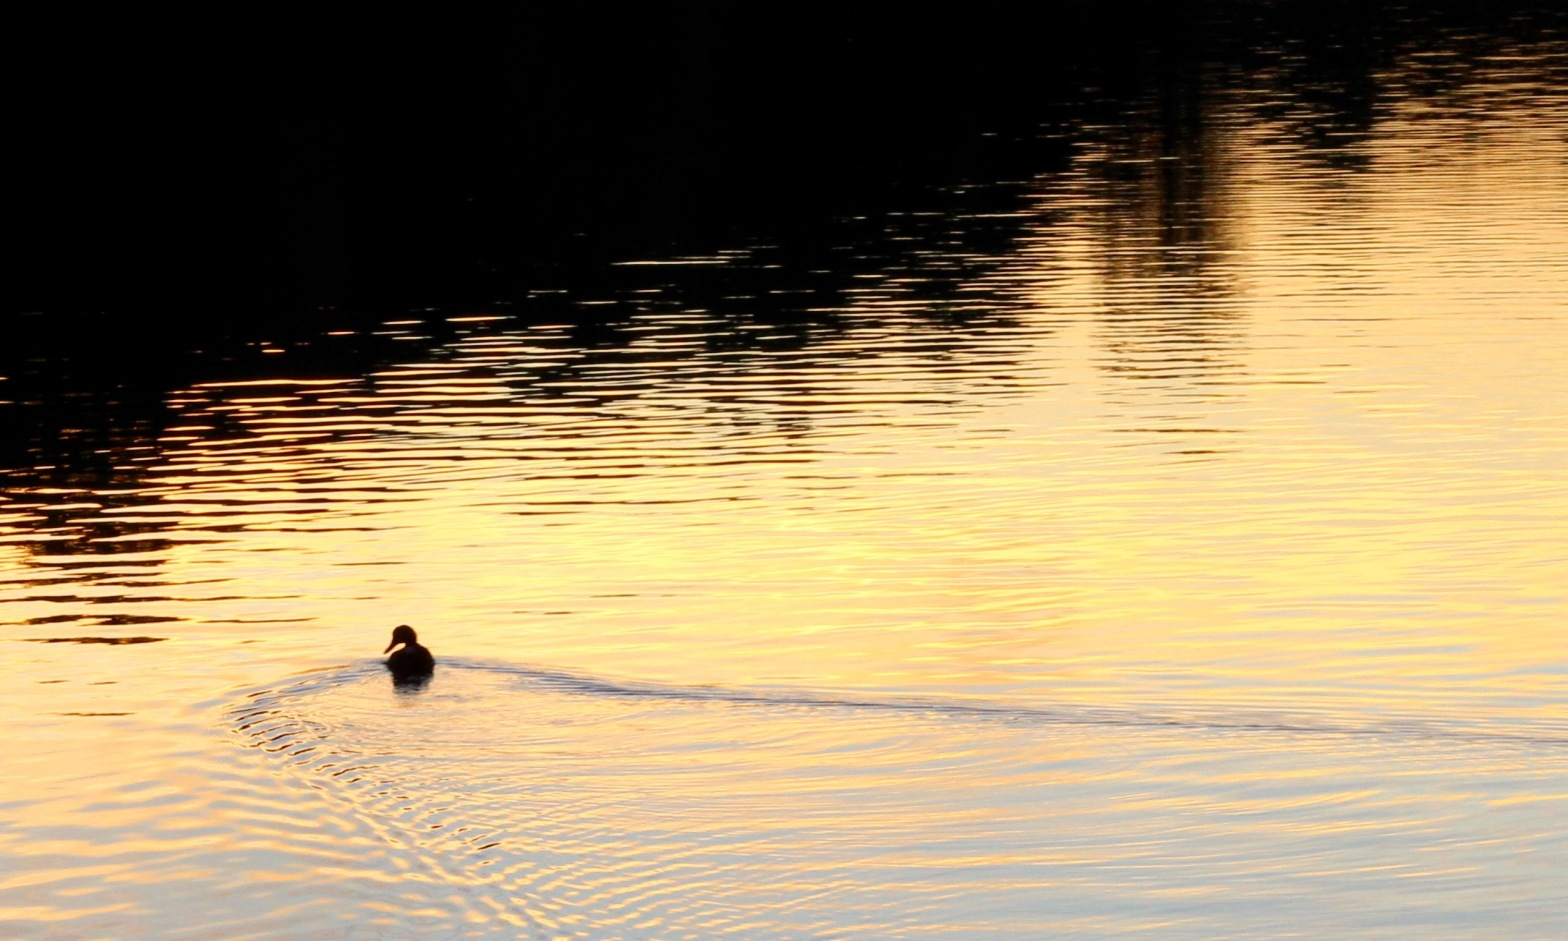 Duck swimming on sunset water